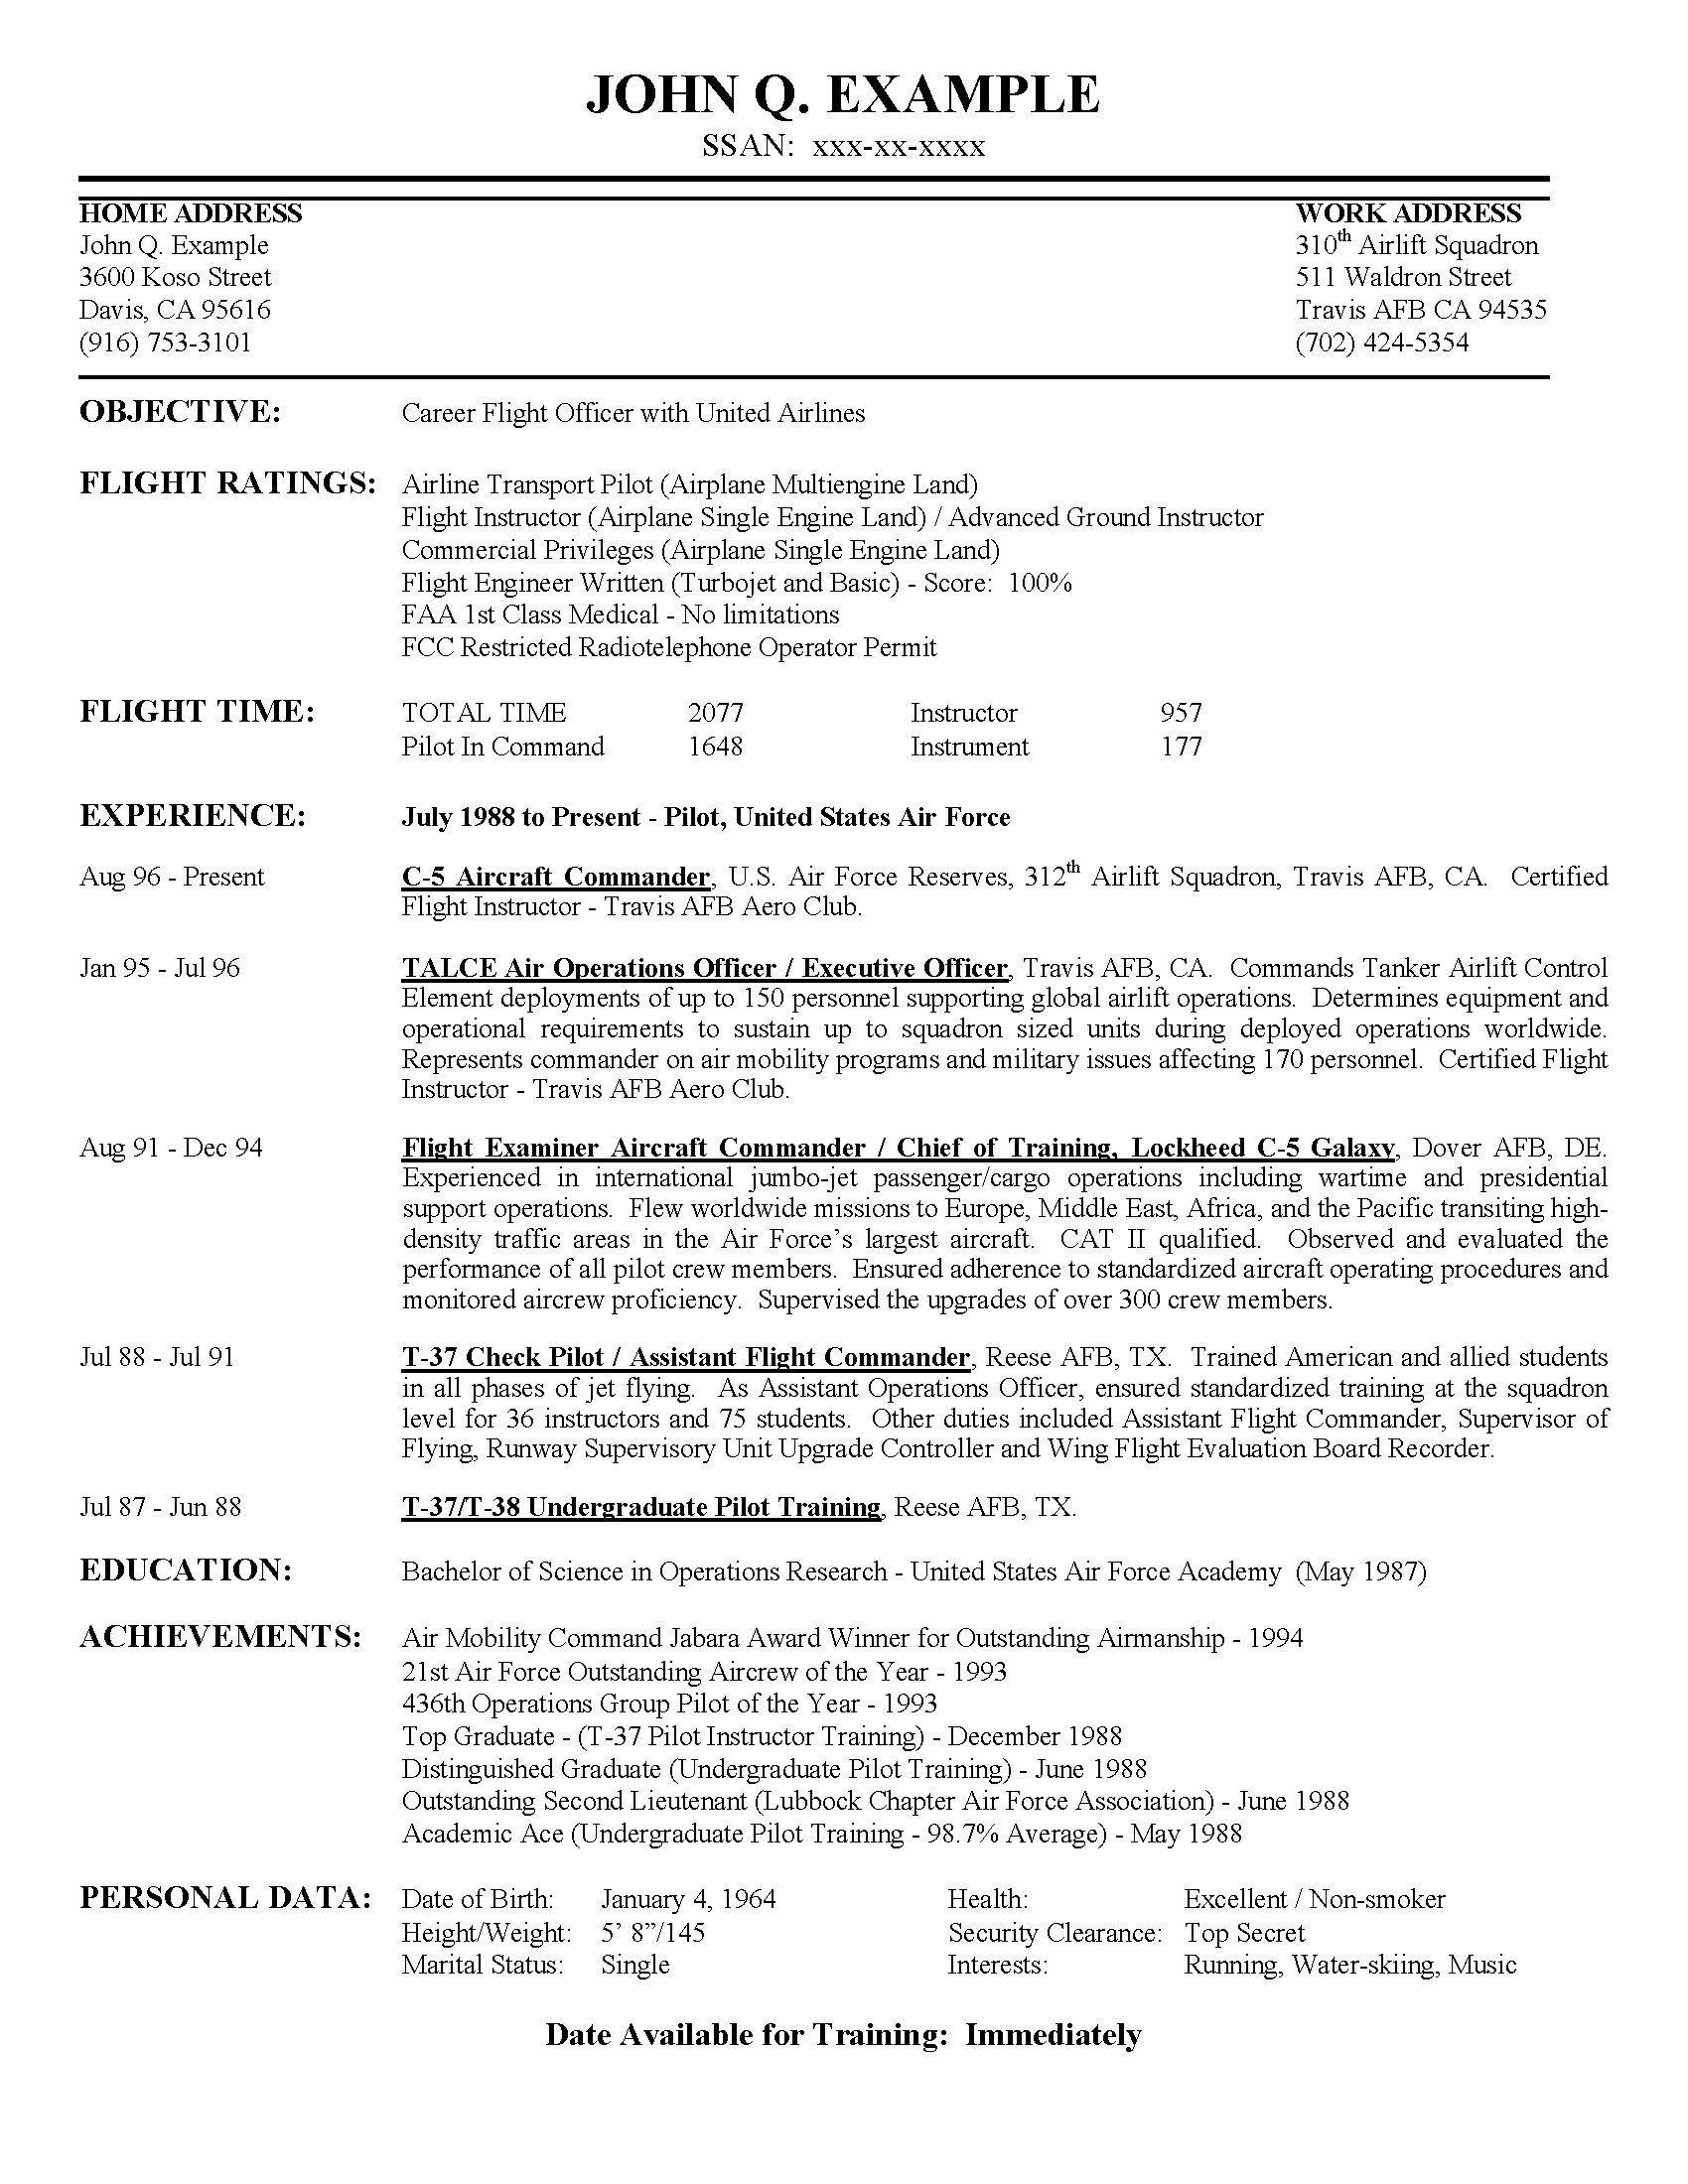 example resume - Pilot Resume Template